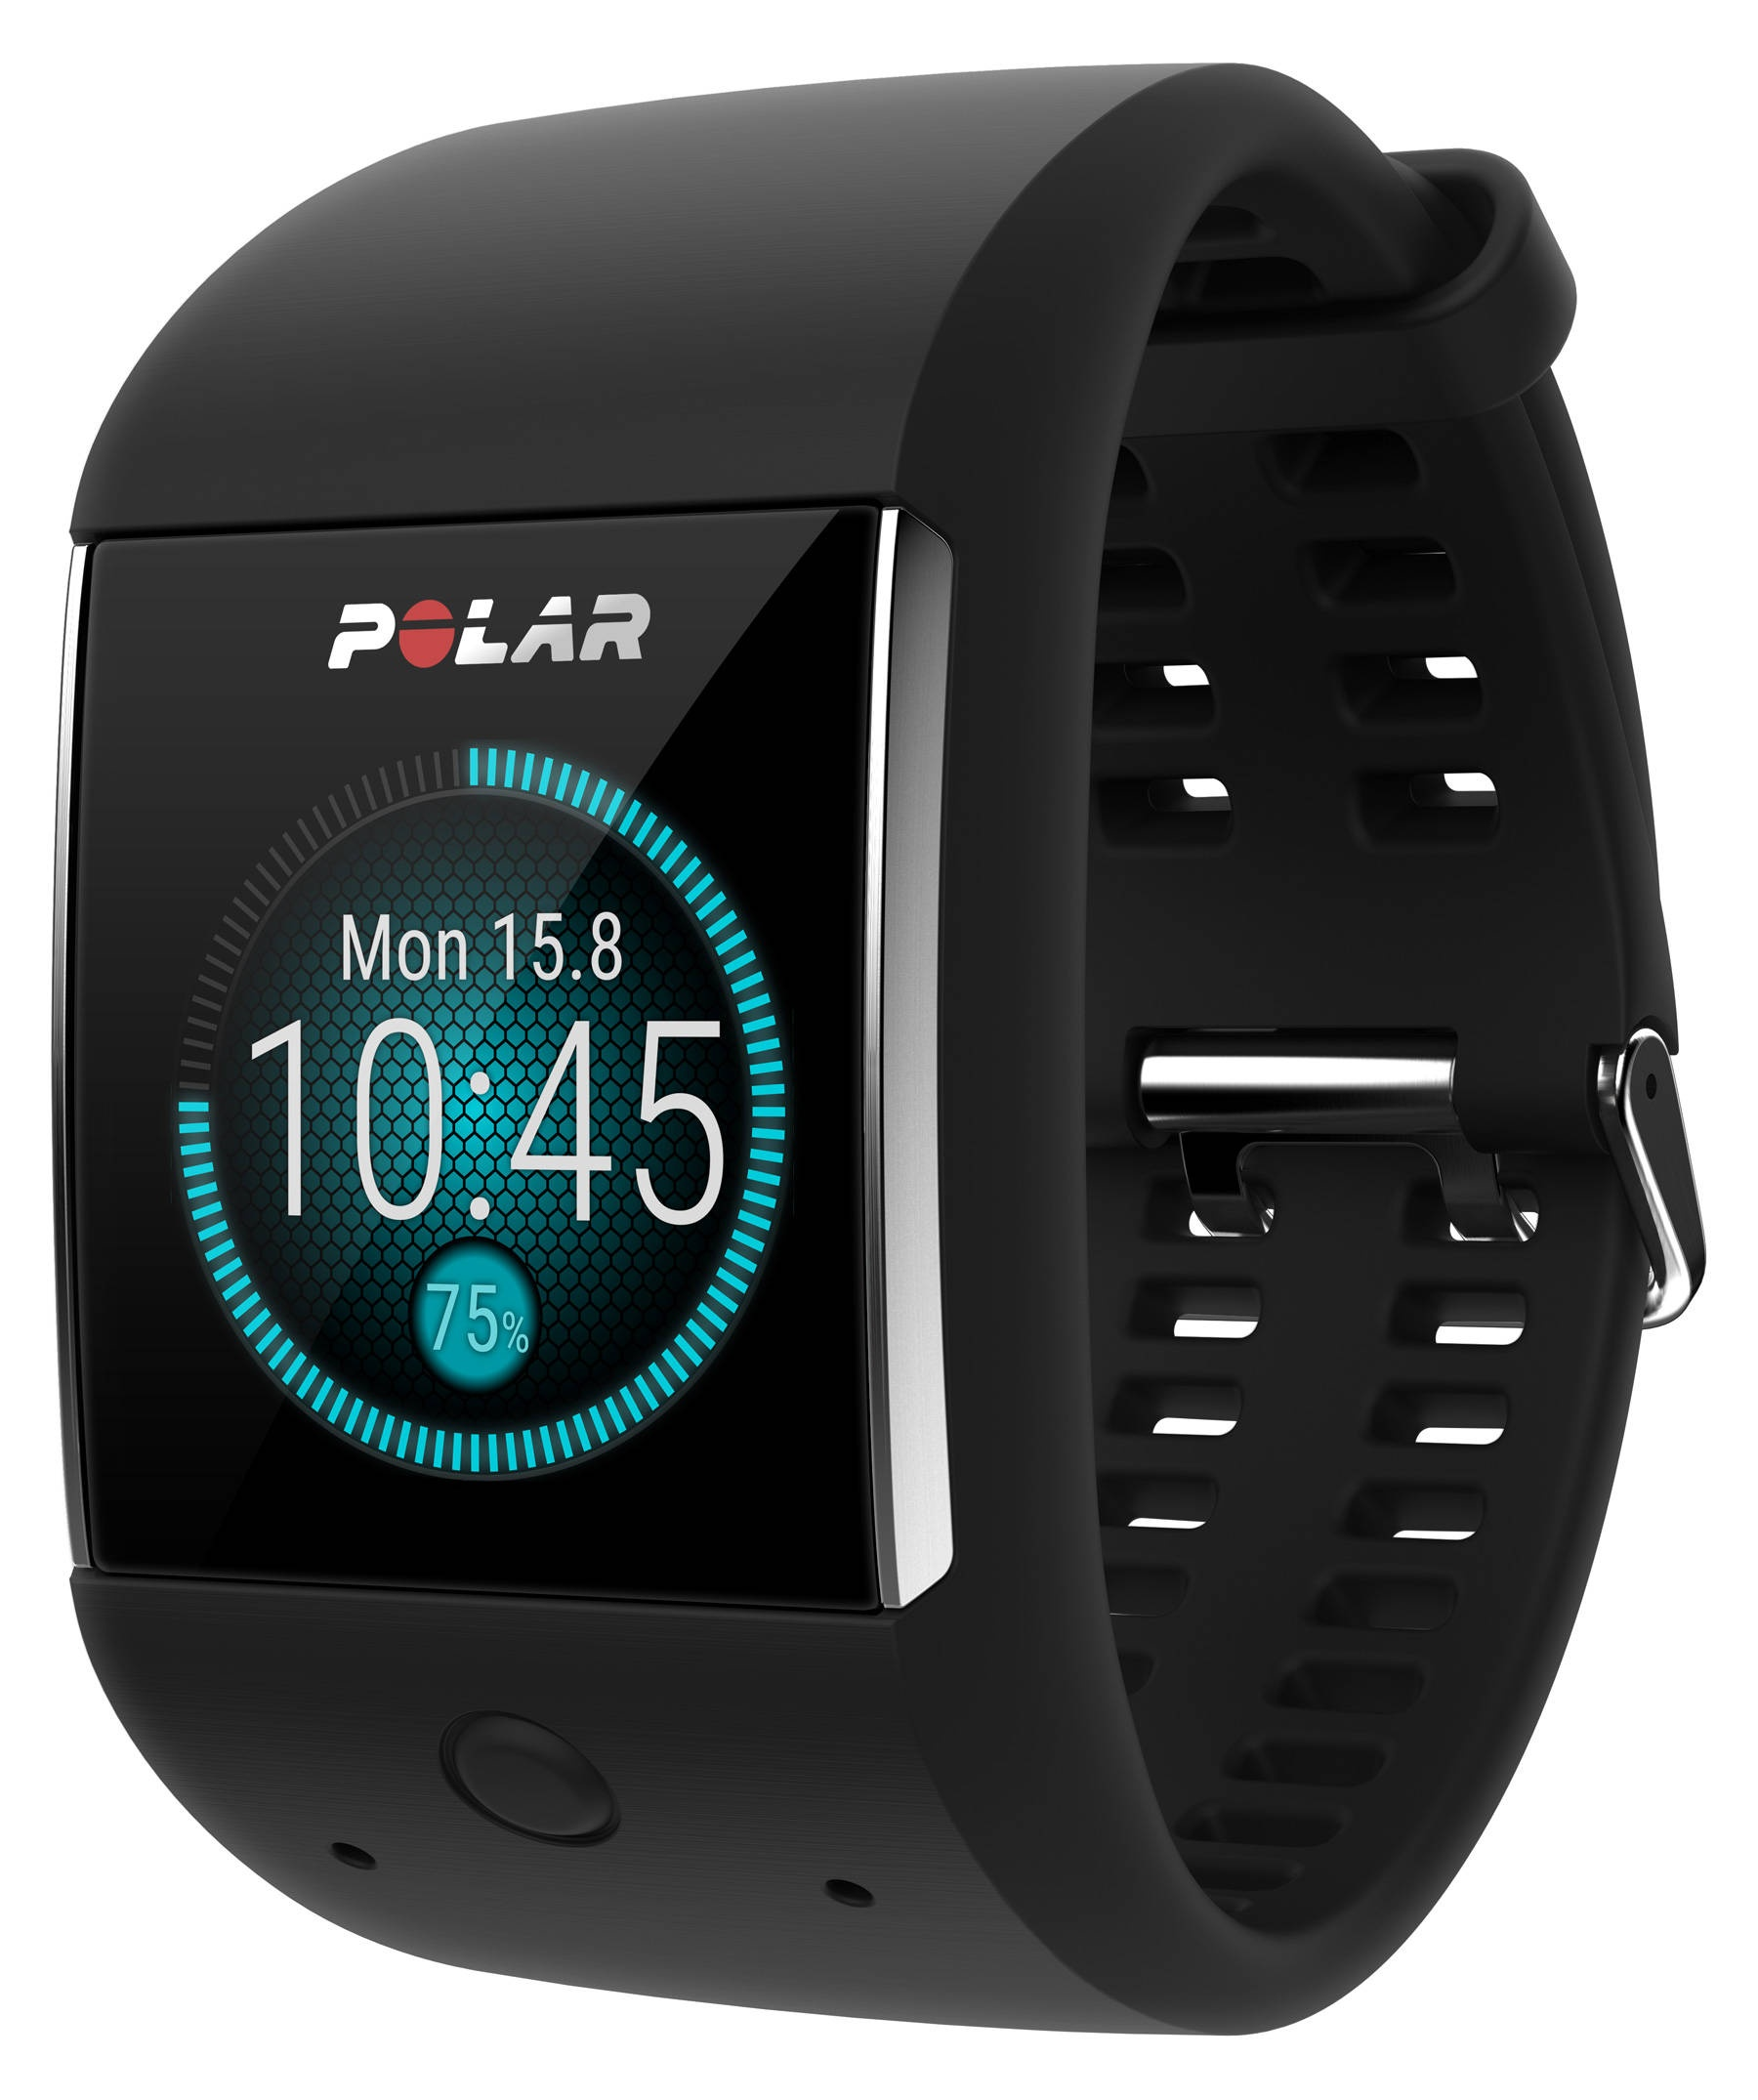 NEW IN: Polar M600 Smartwatch